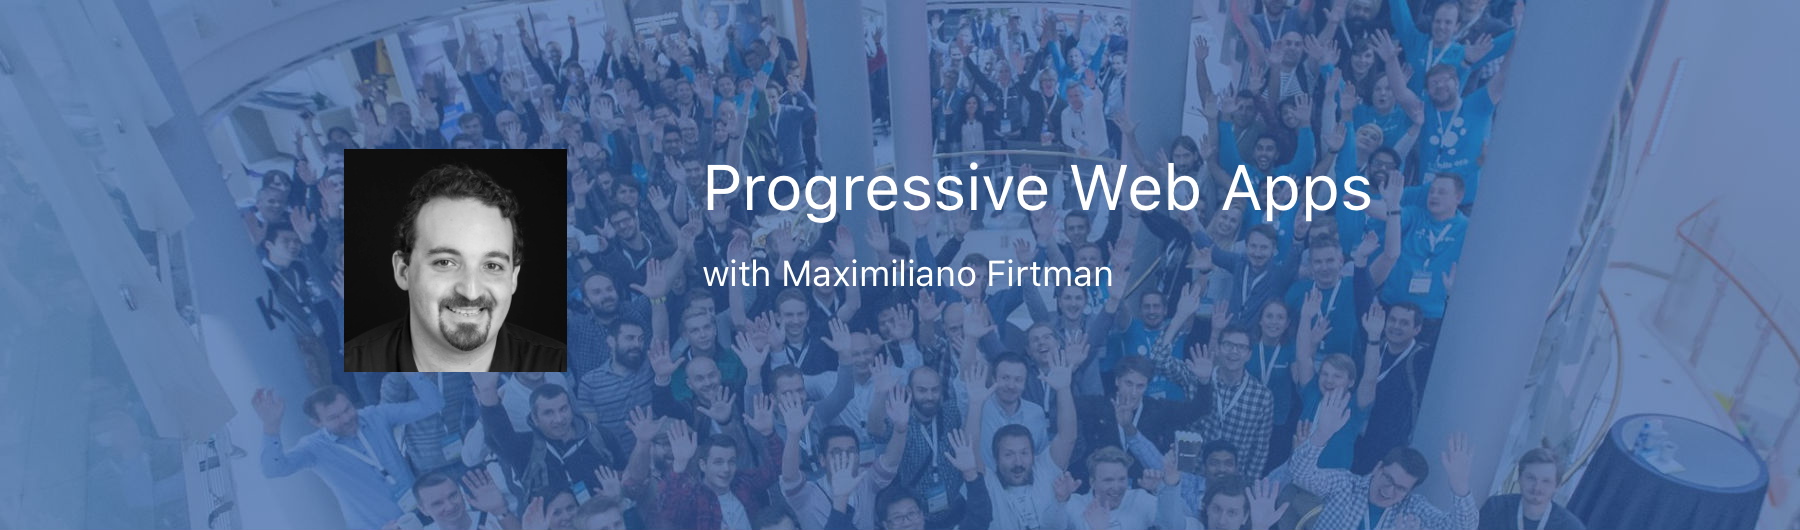 Workshop: Progressive Web Apps with Maximiliano Firtman